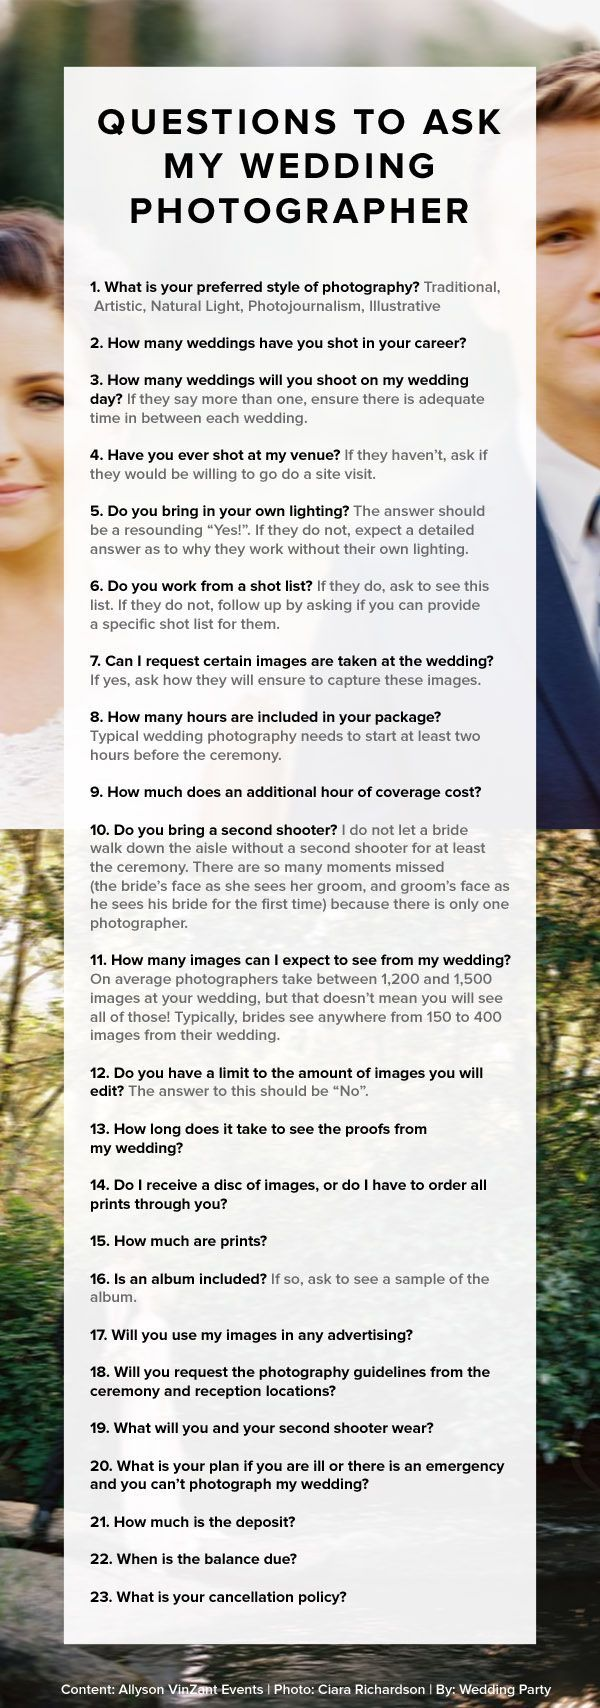 Questions To Ask My Wedding Photographer By Allyson Vinzant Events